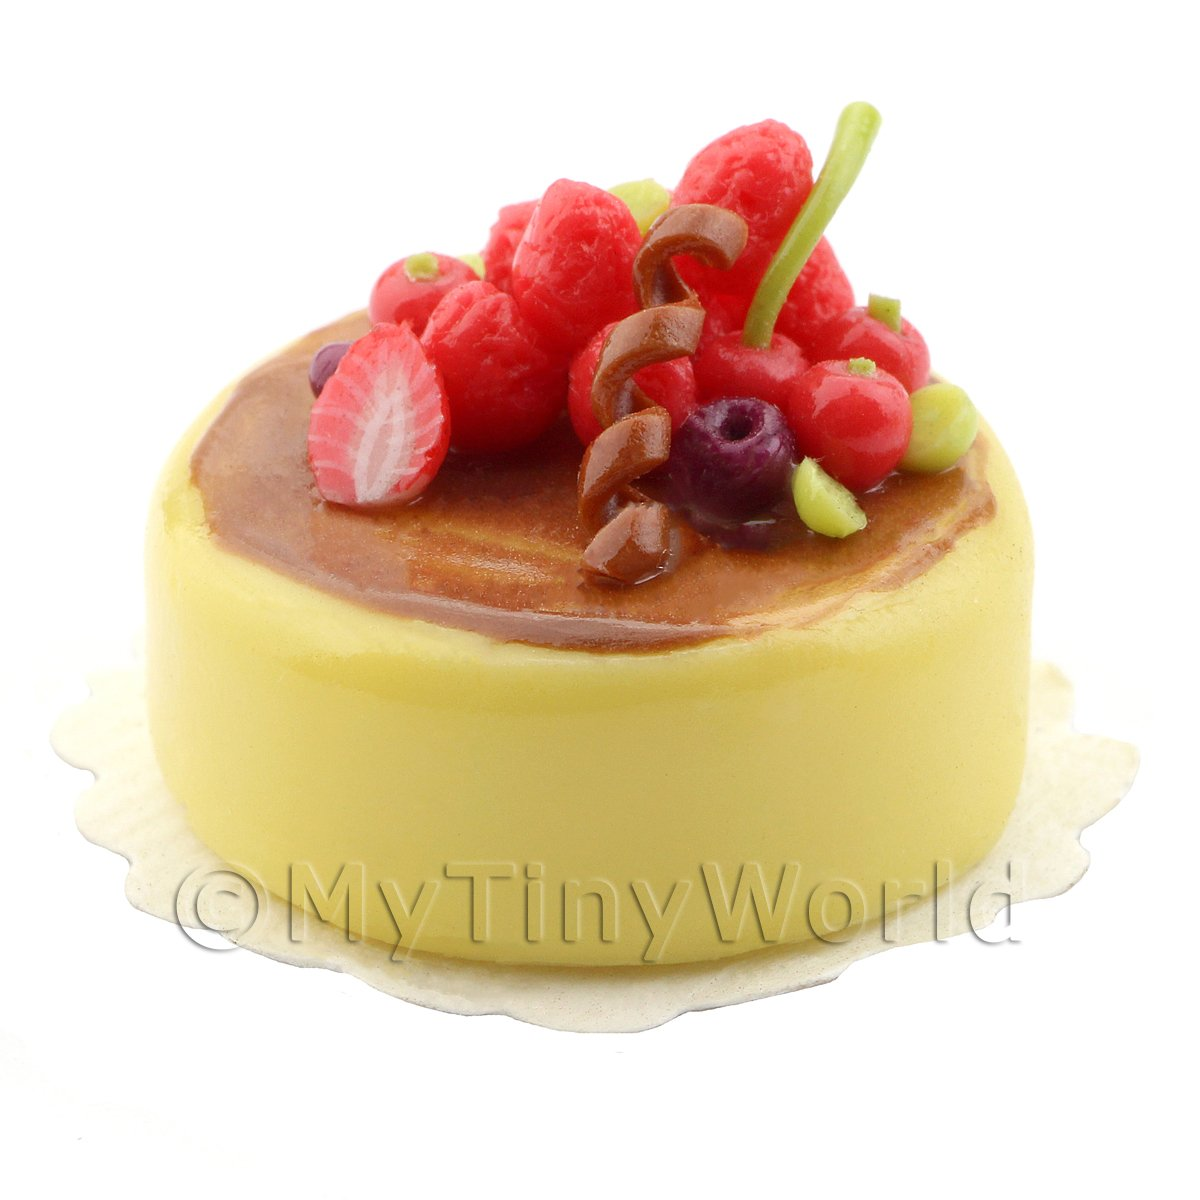 Dolls House Miniature Handmade Lemon Cake with Strawberries